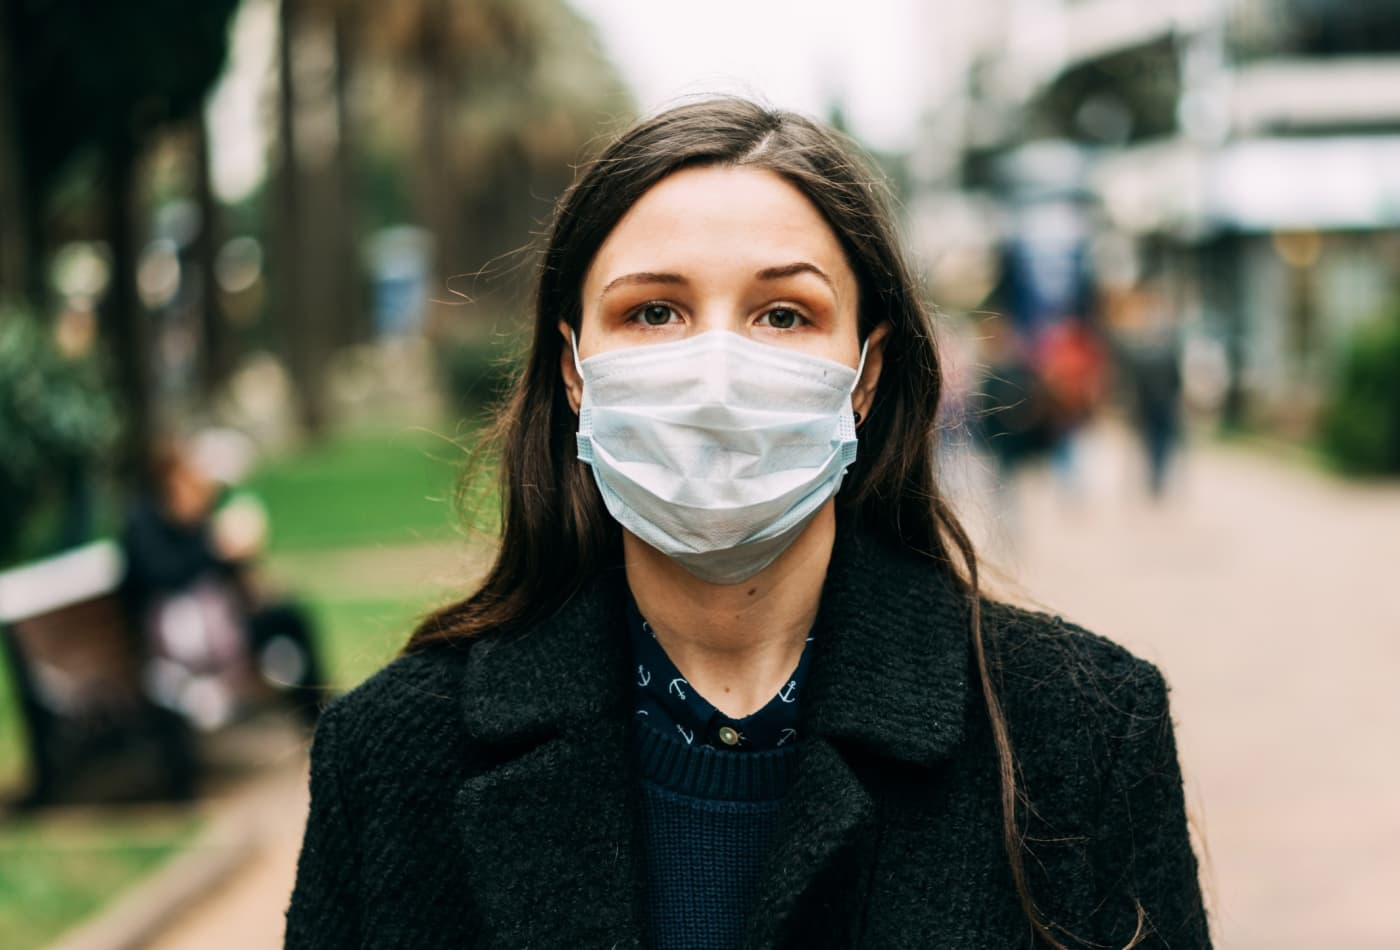 Should you wear a face mask to prevent COVID-19? Doctors weigh in